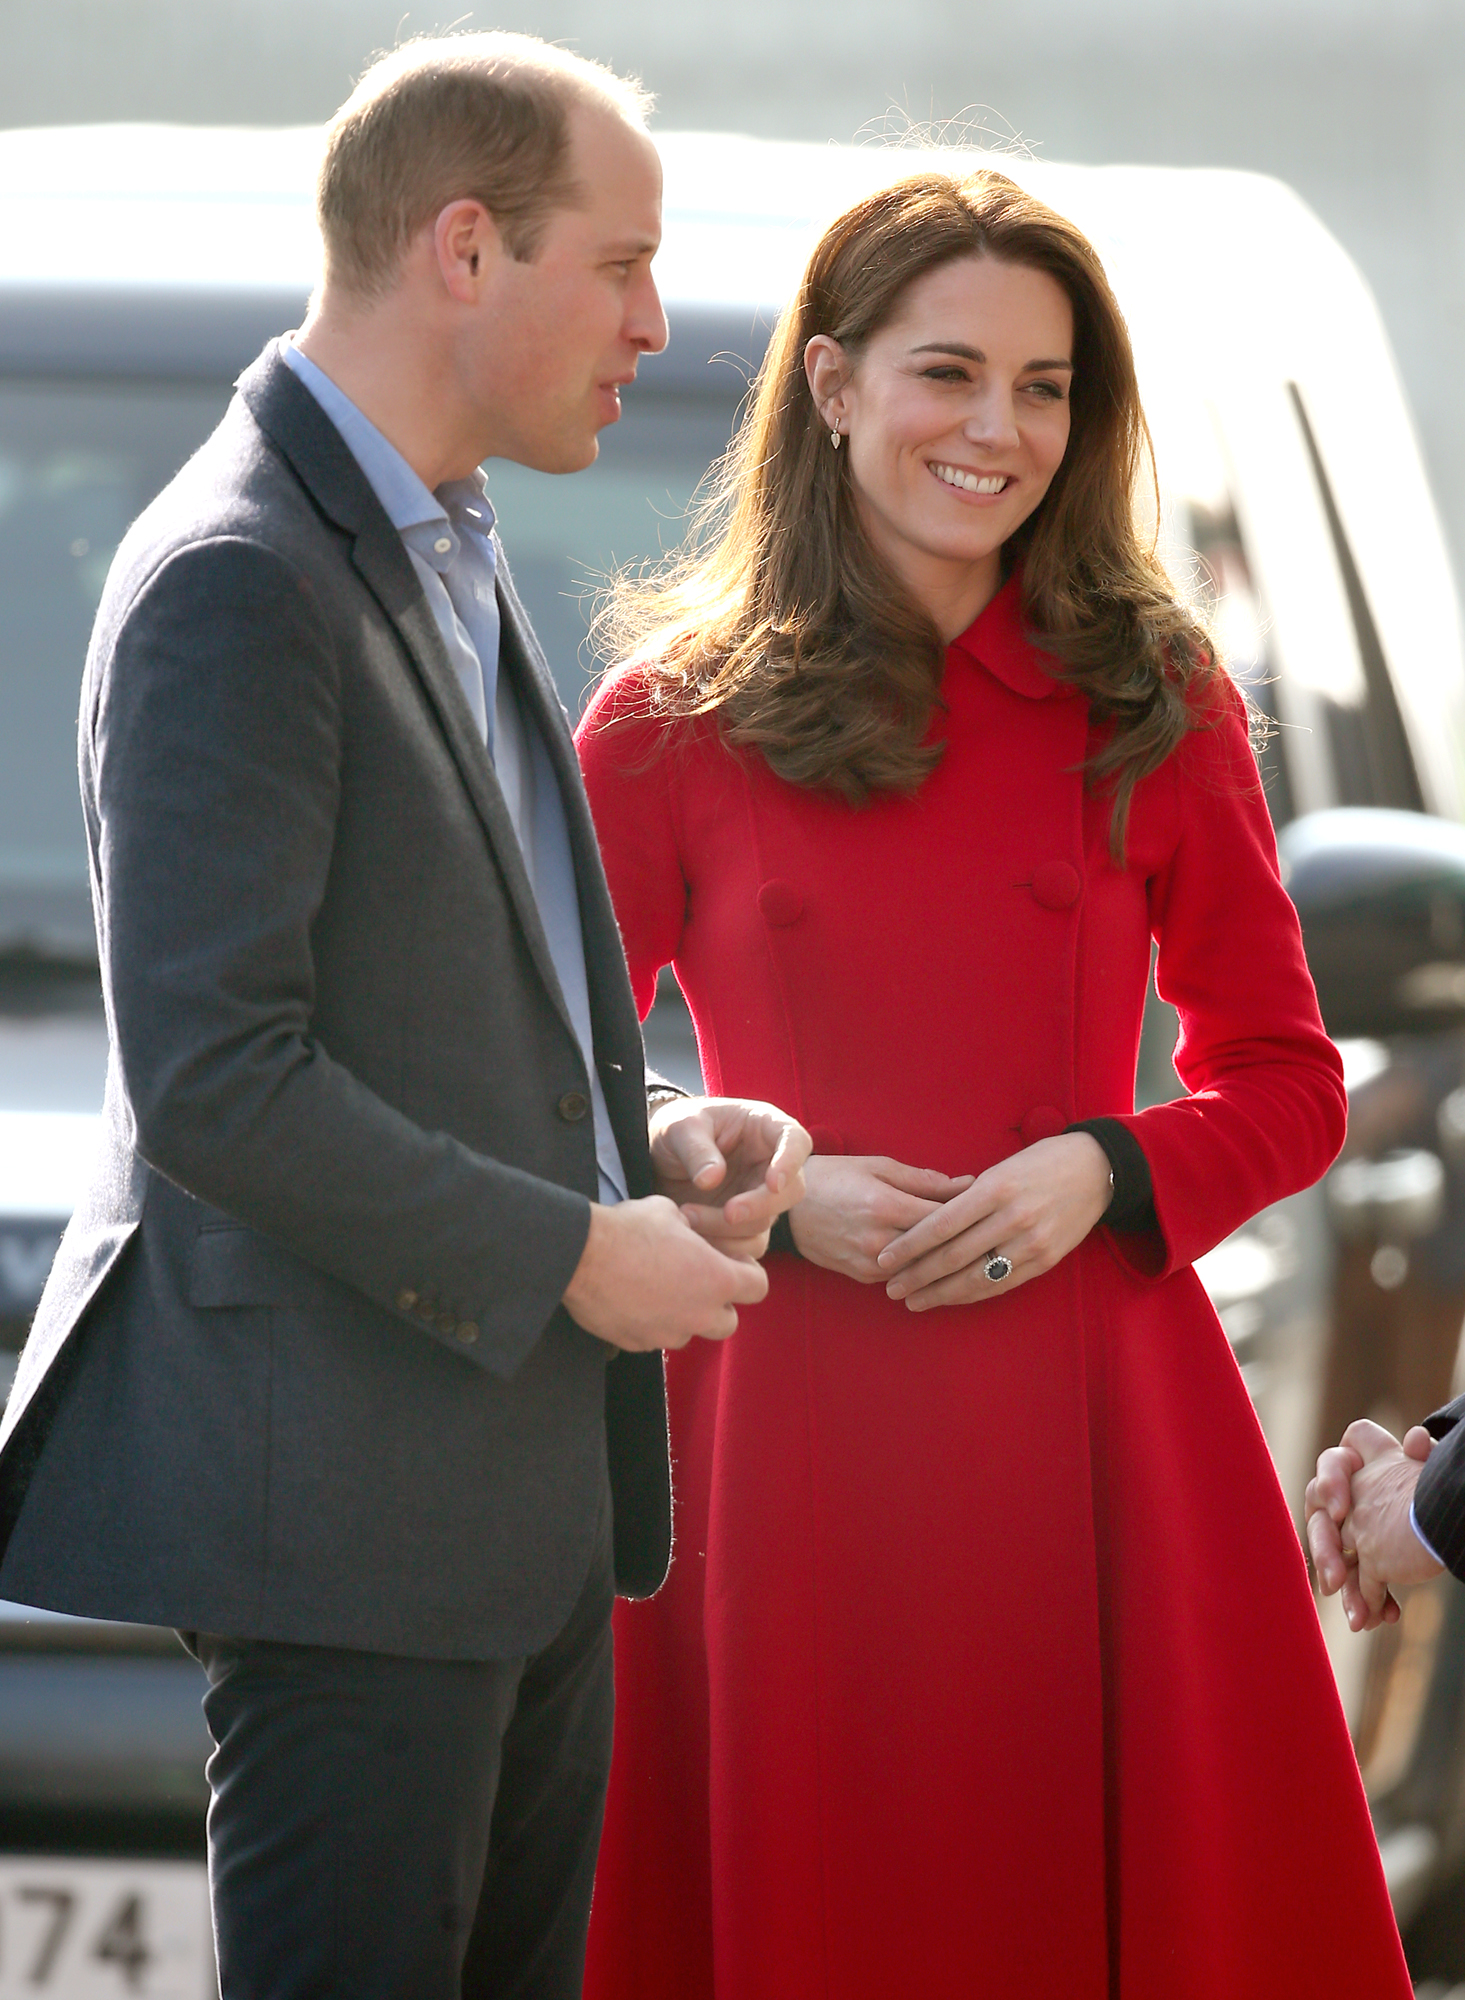 Duke and Duchess of Cambridge visit to NI - Day 1